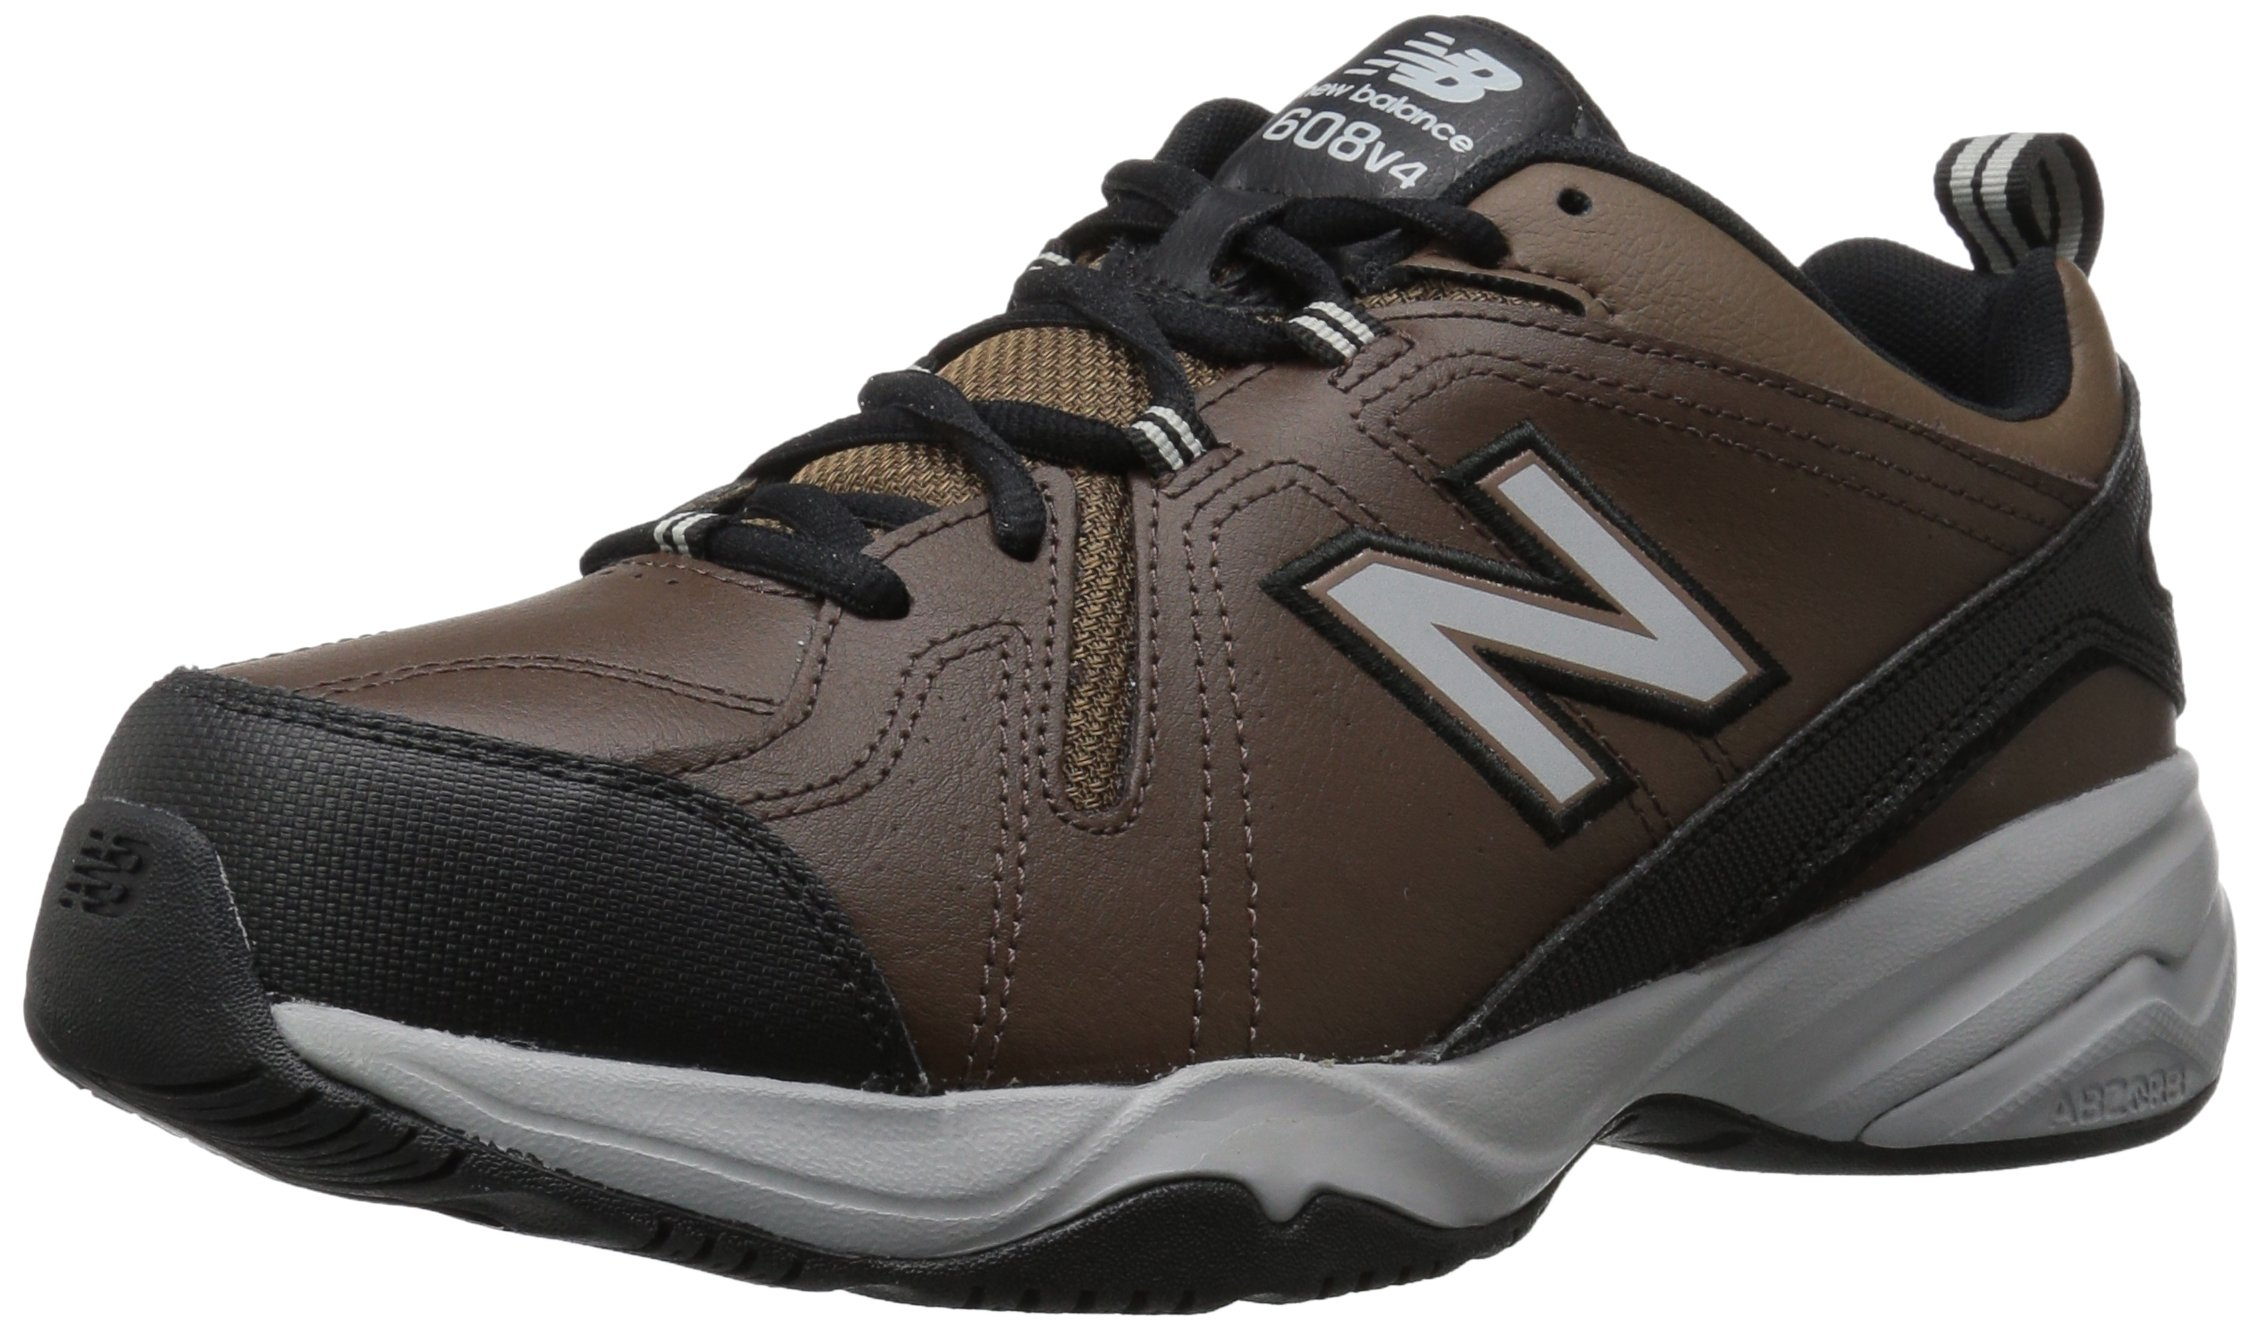 New Balance Men's MX608v4 Training Shoe, Brown, 9.5 D US